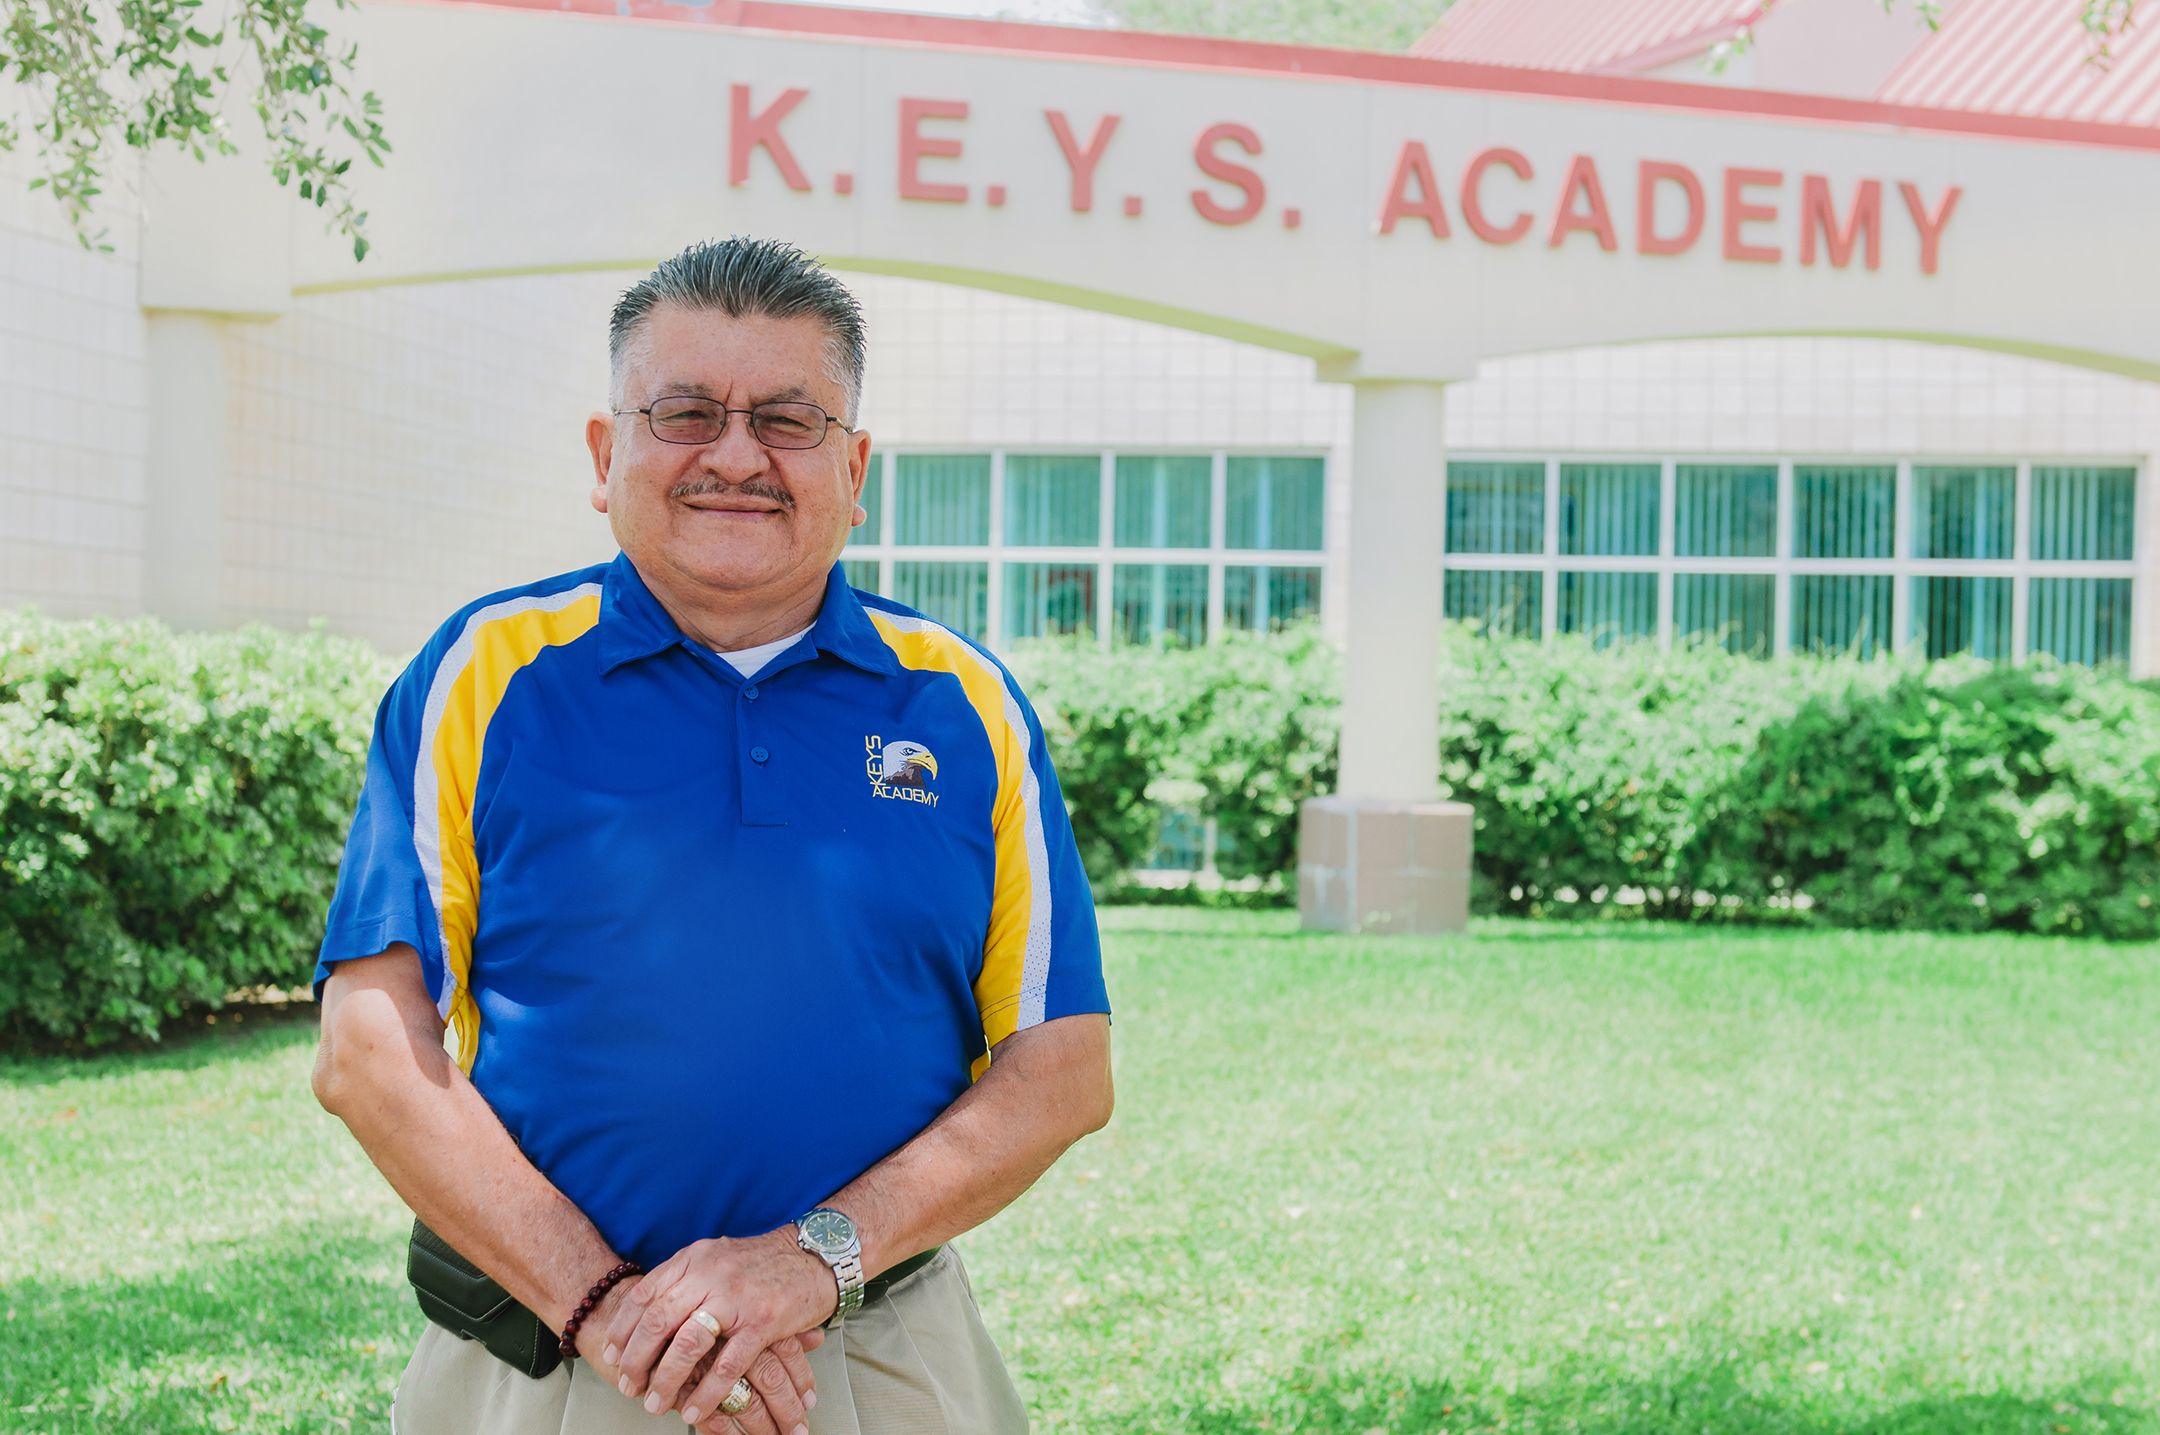 KEYS teacher named Semi-Finalist in 2017 Excellence in Education Awards